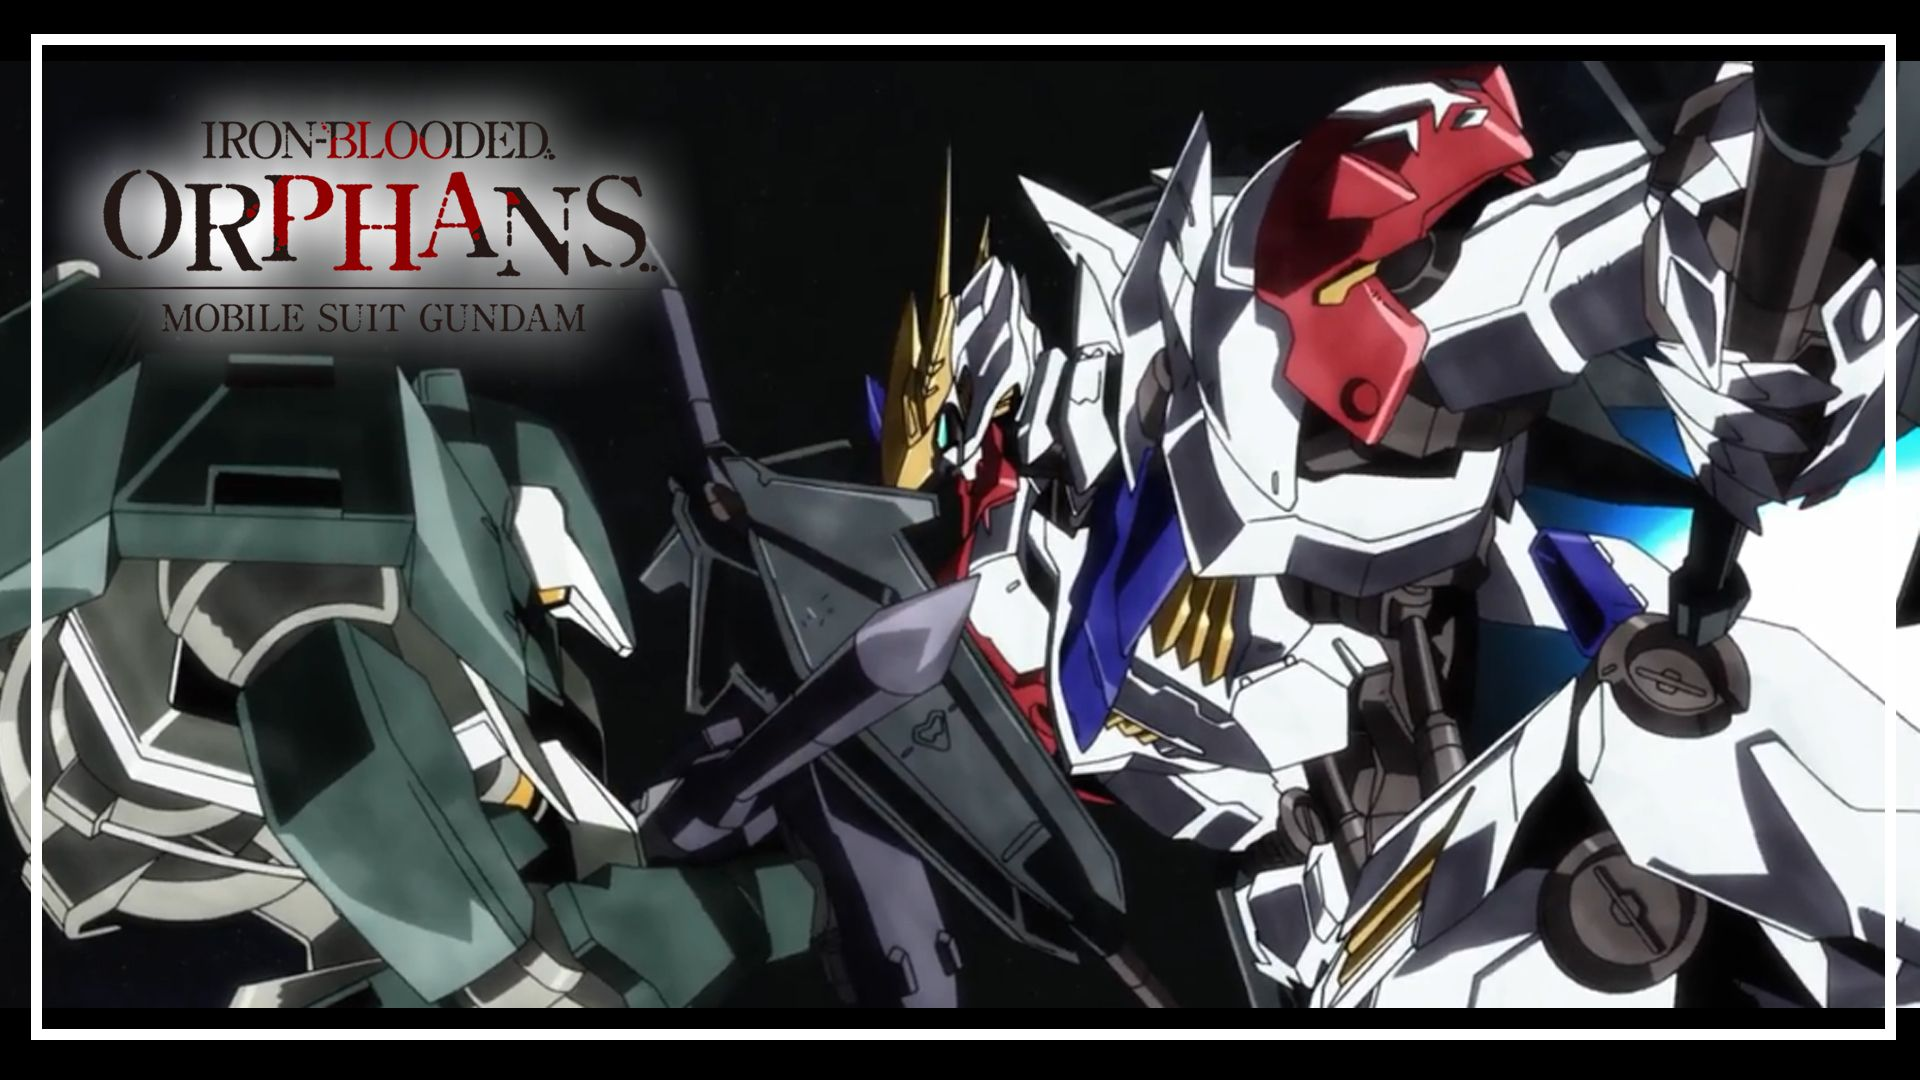 Gundam Iron Blooded Orphans Wallpapers High Quality Mobile Suit